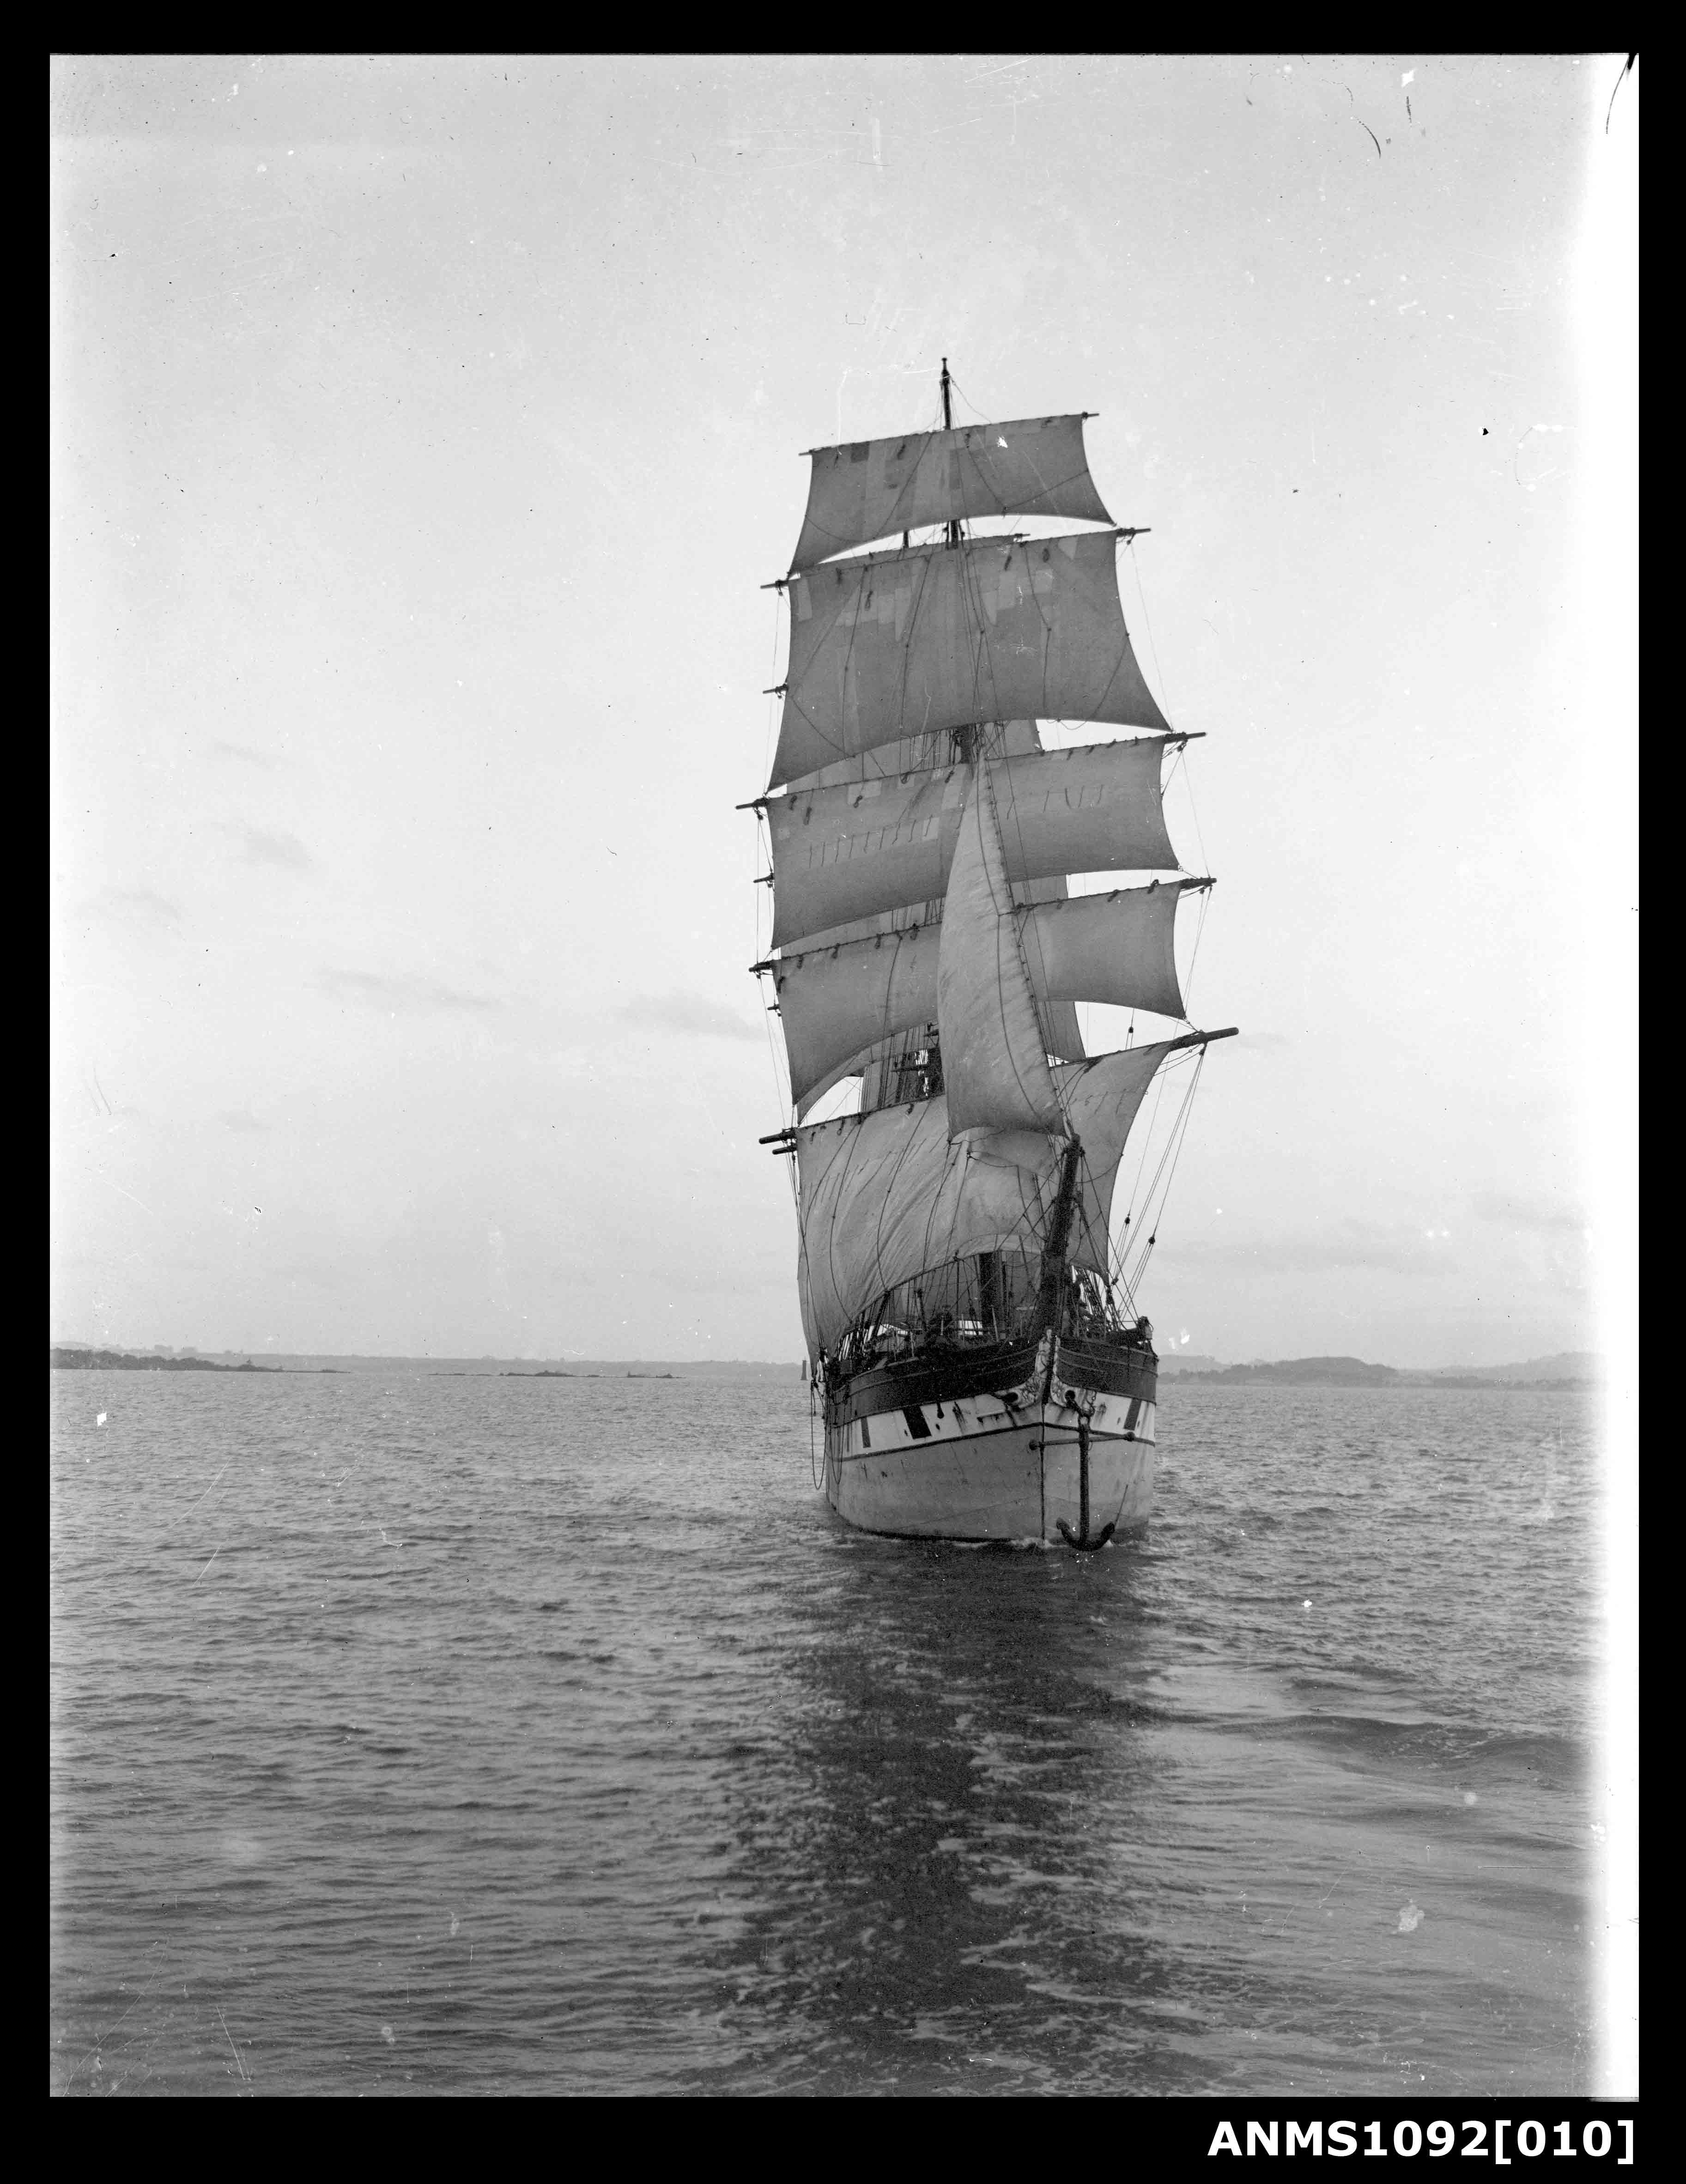 RAUPO with sails set and underway